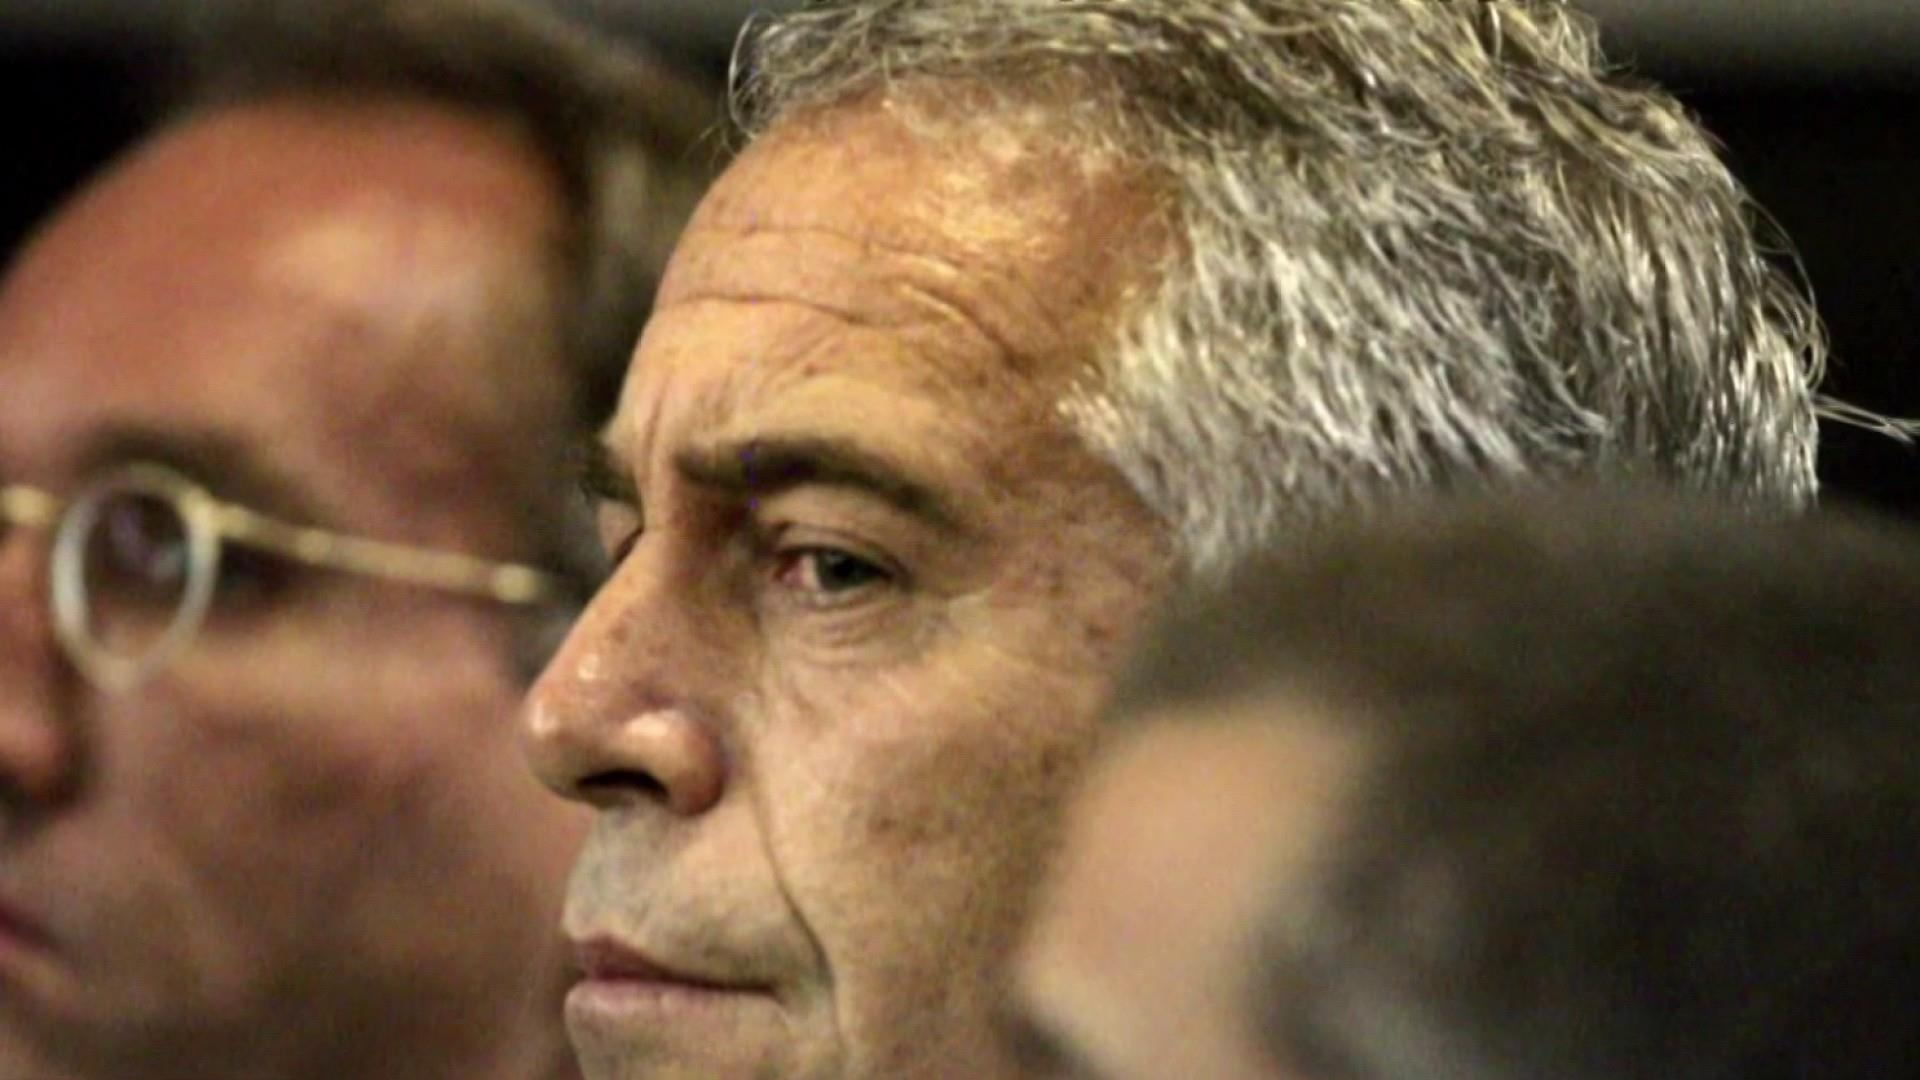 More questions than answers after Epstein's death